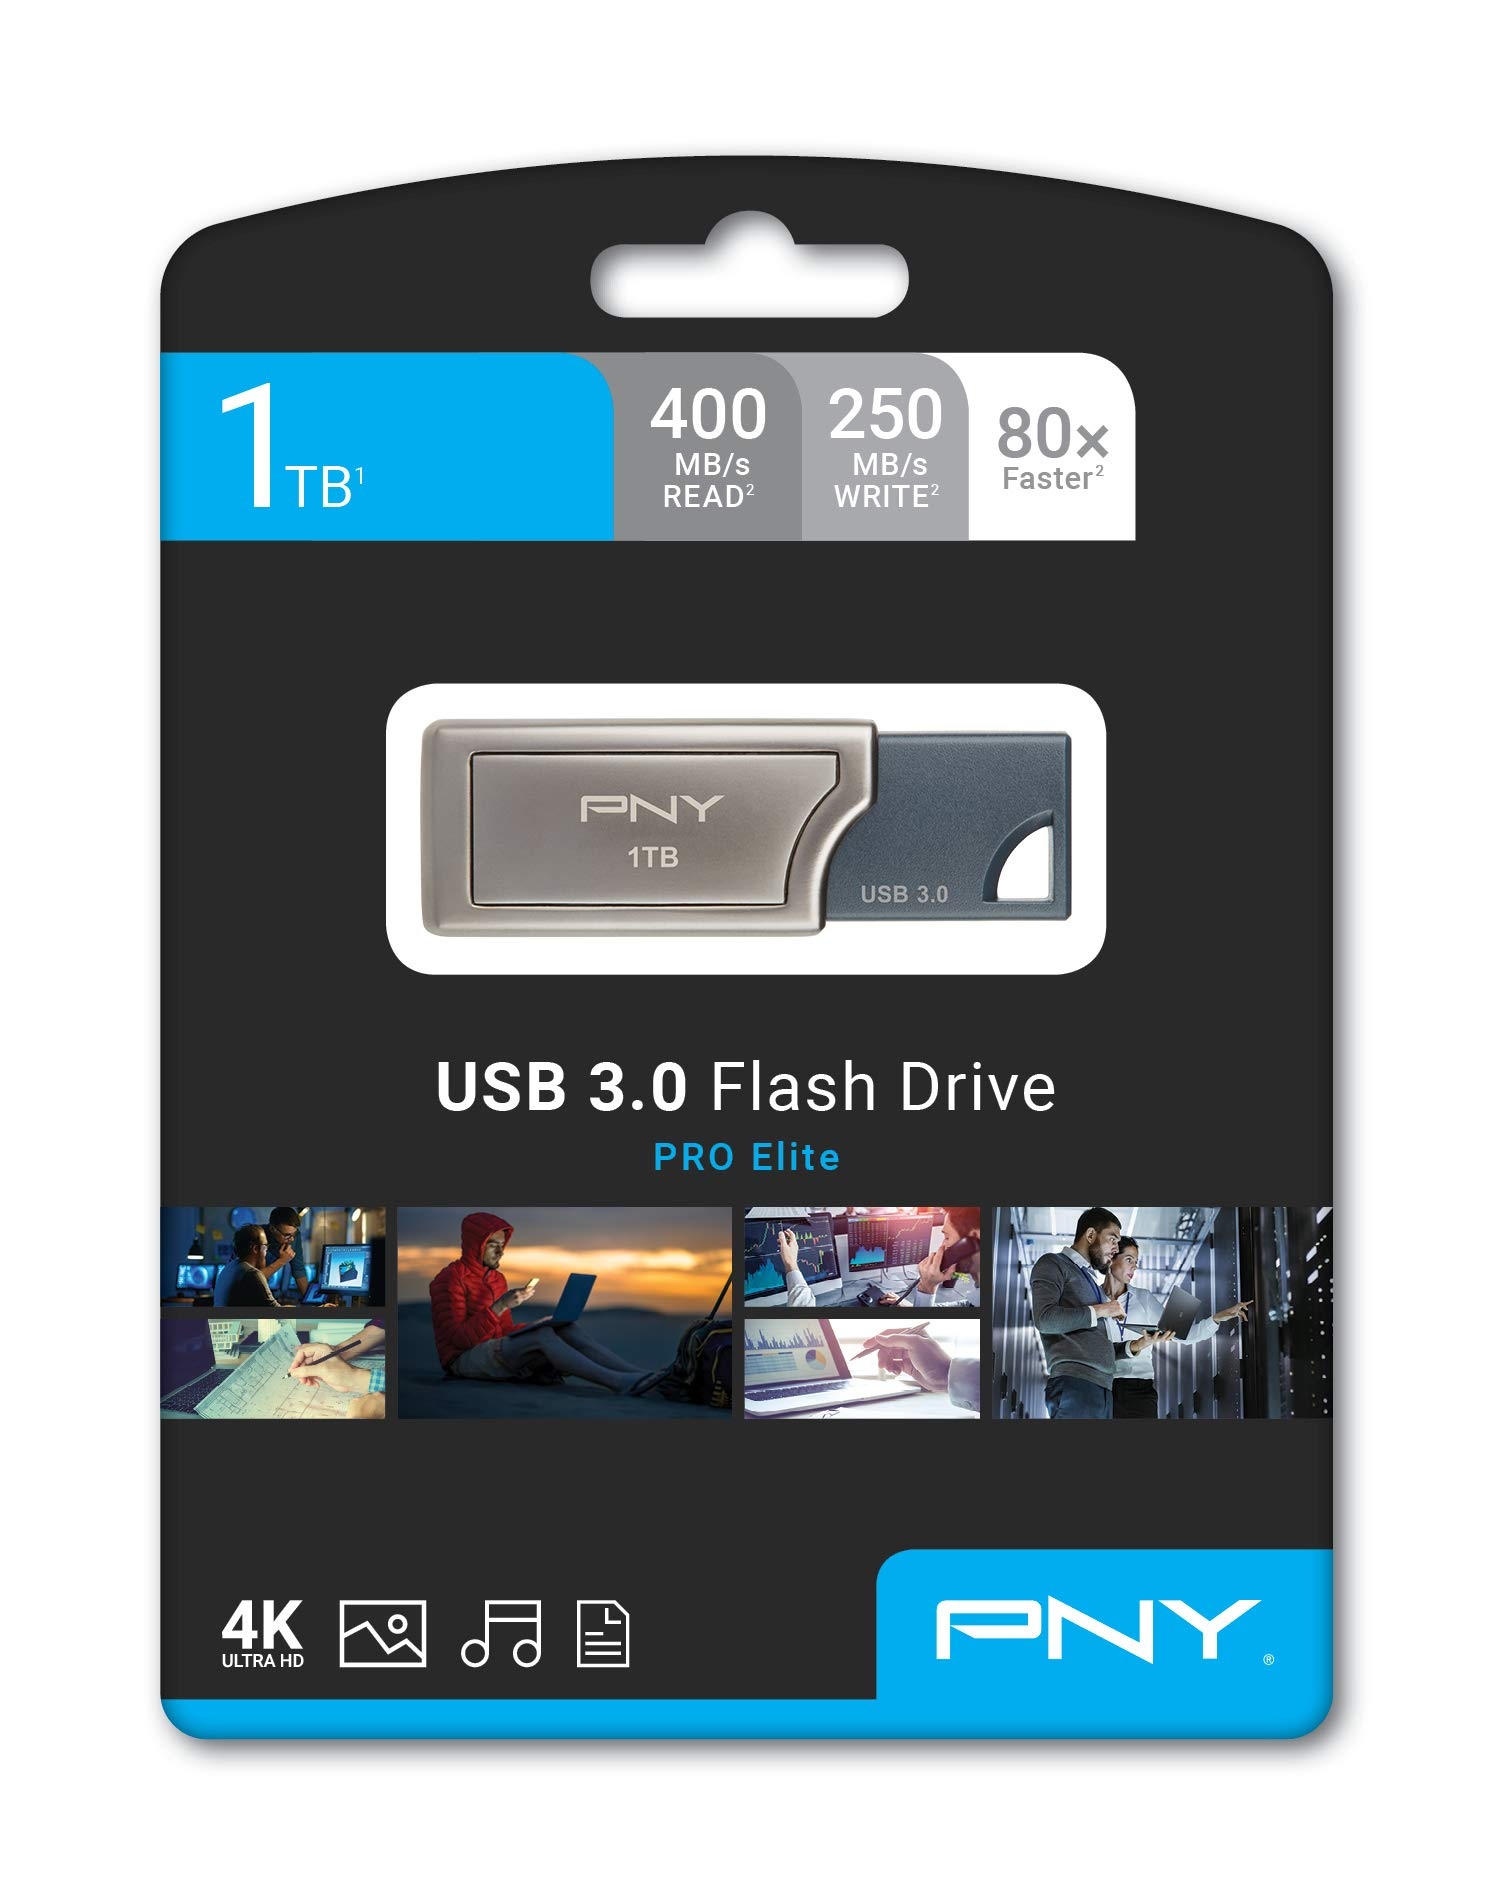 PNY Pro Elite 1TB USB 3.0 Flash Drive, Read Speeds up to 400MB/S (P-FD1TBPRO-GE) by PNY (Image #5)